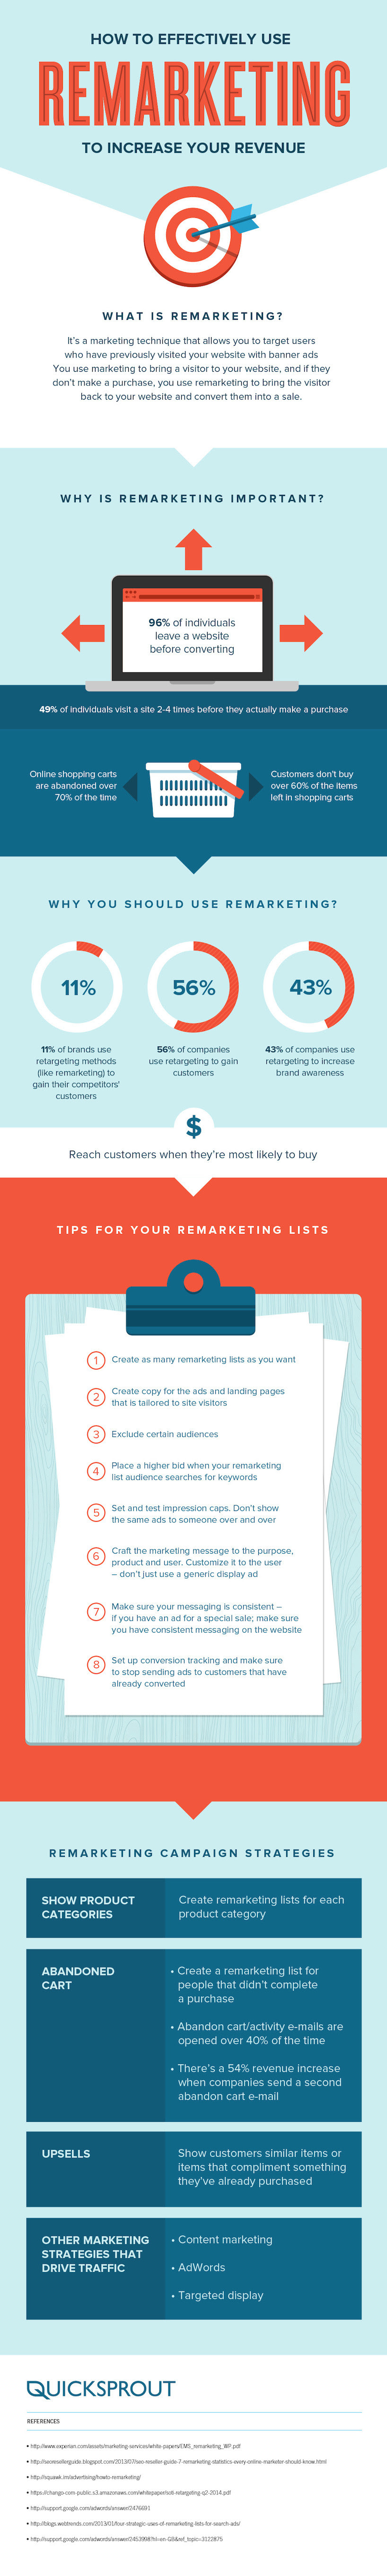 Remarketing - What it is and Why it is Important - #infographic